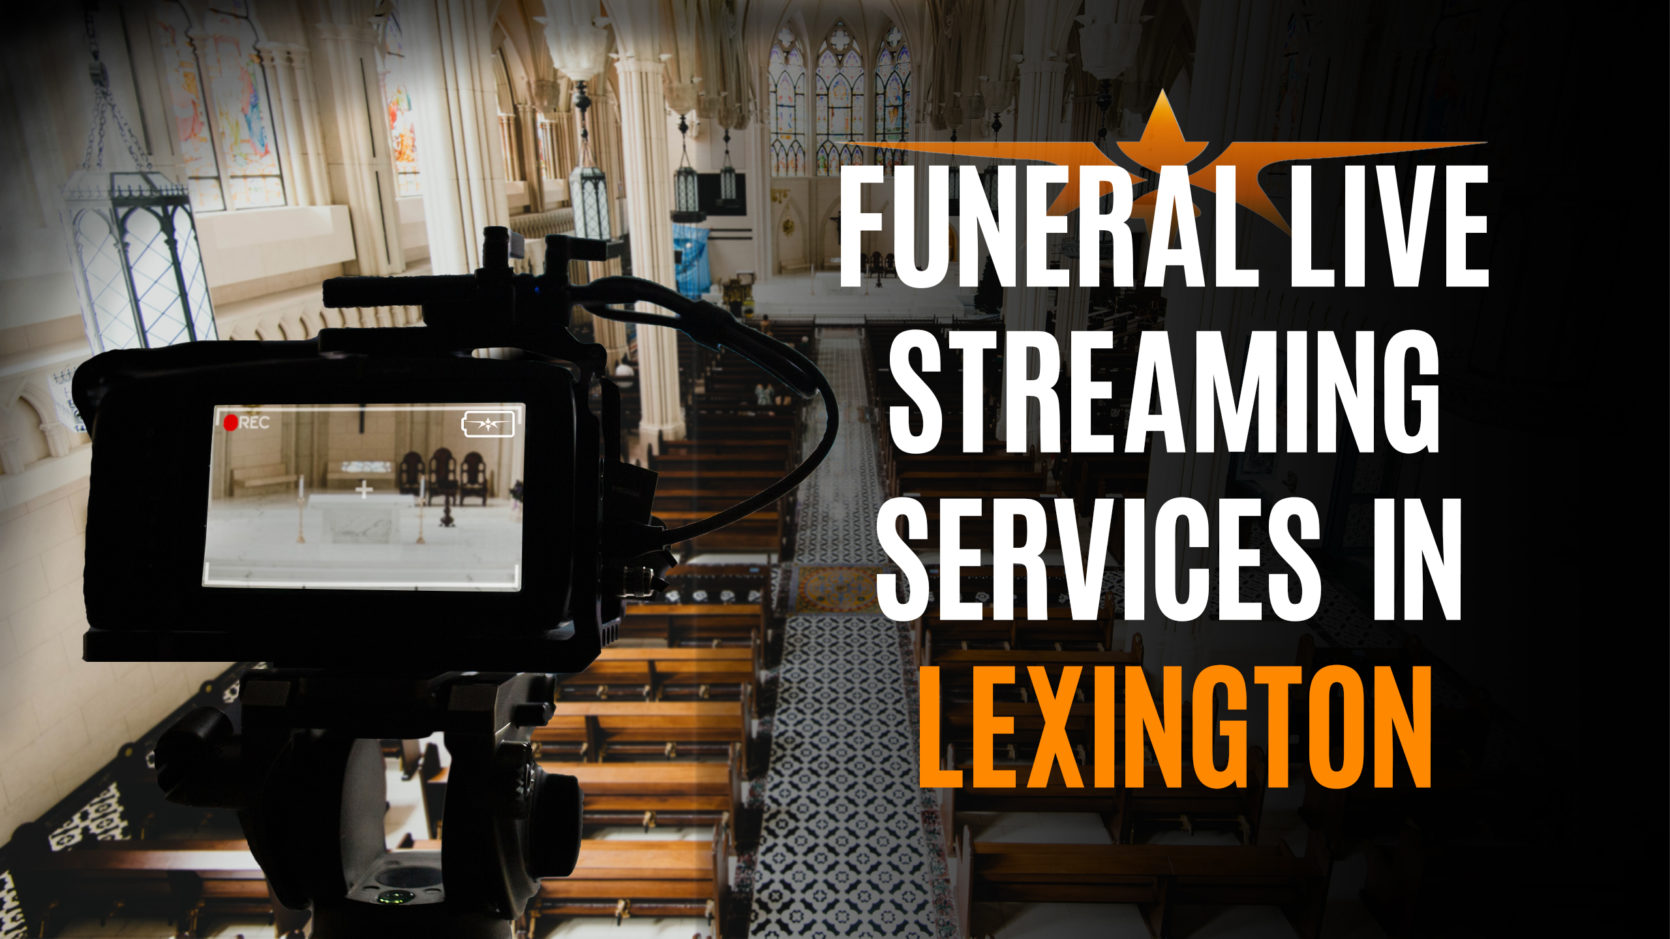 Funeral Live Streaming Services in Lexington